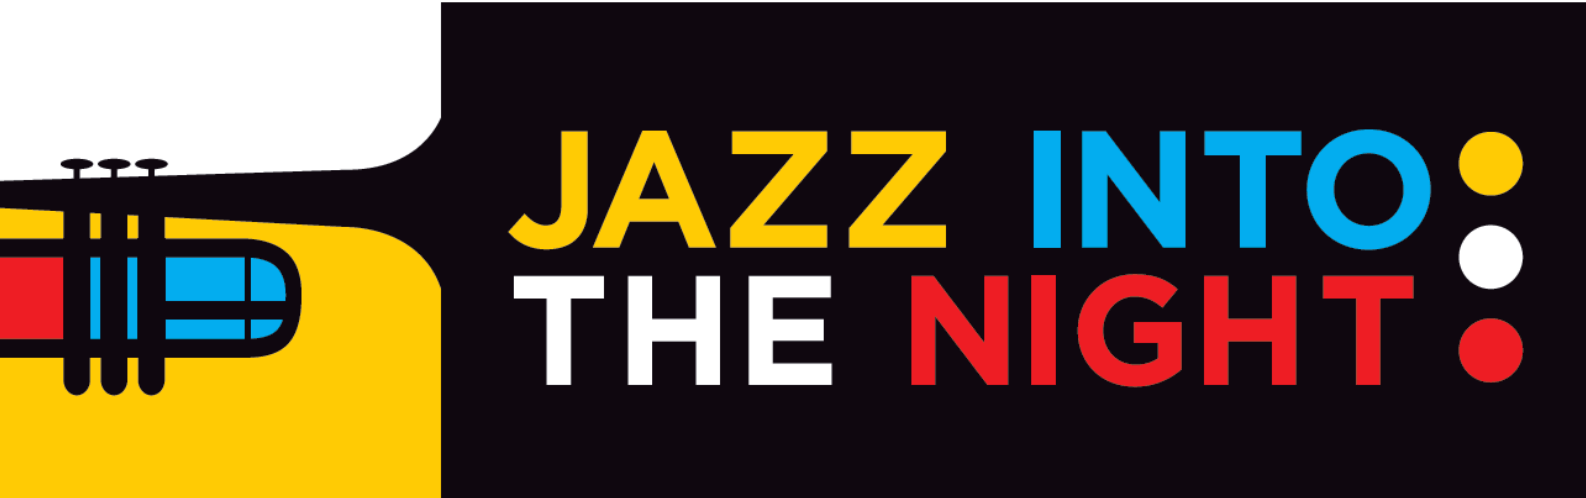 Jazz_into_the_Night_at_Utica_Square_-_September_2019_-_Events_in_Tulsa.png